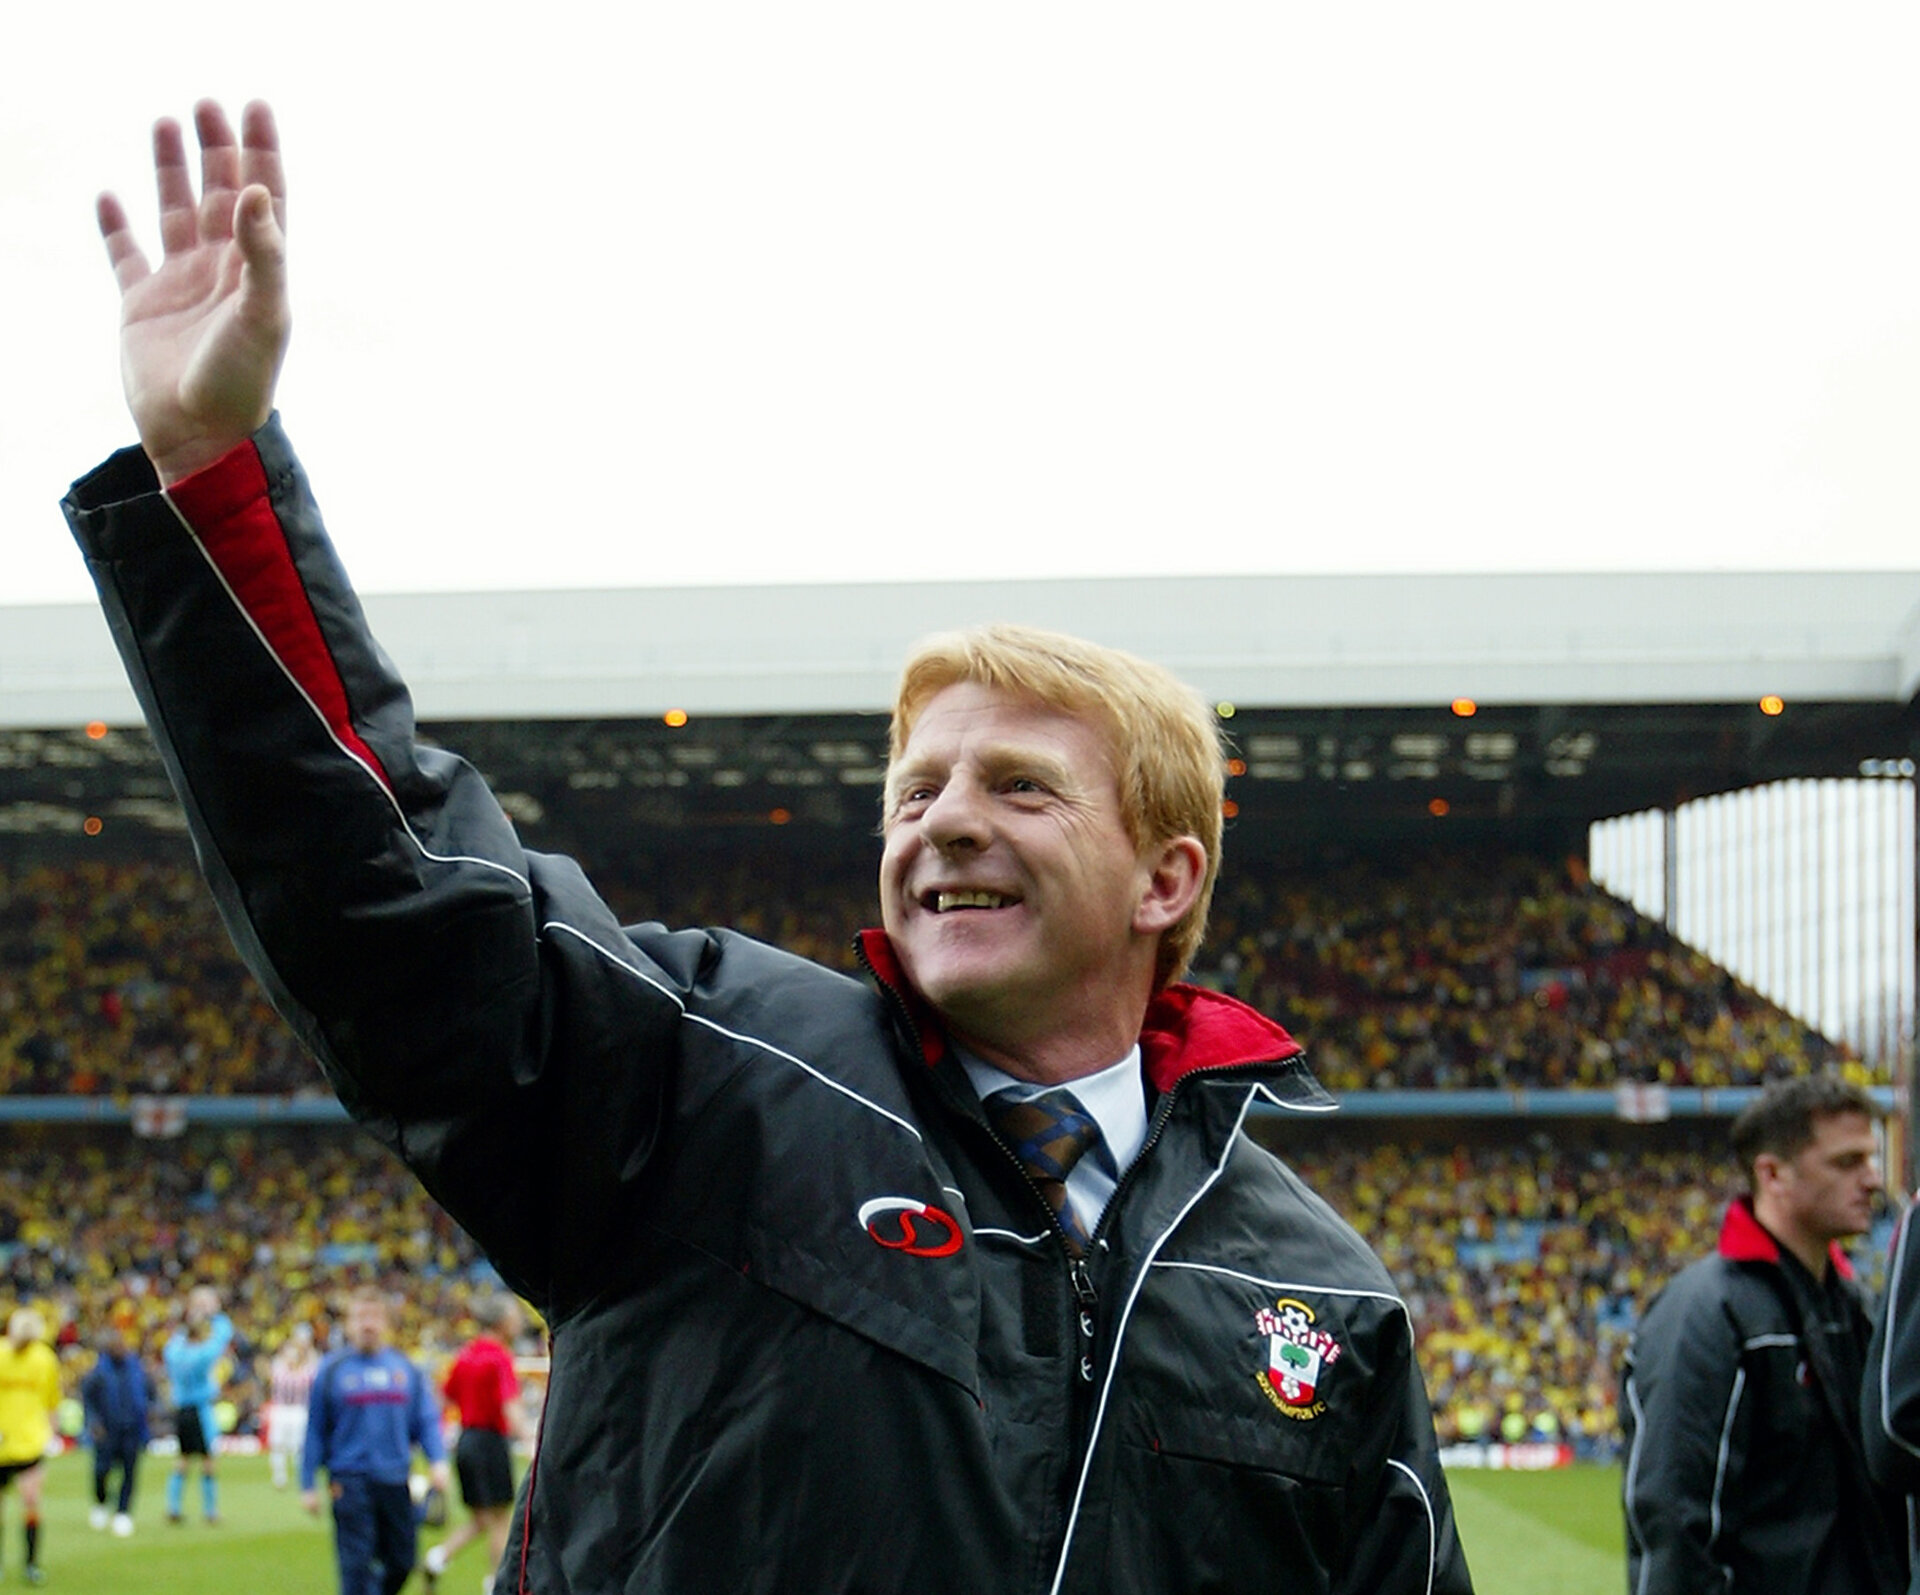 BIRMINGHAM - APRIL 13:  Southampton manager Gordan Strachan celebrates after the FA Cup Semi-Final match between Southampton and Watford held on April 13, 2003 at Villa Park, in Birmingham, England. Southampton won the match 2-1. (Photo by Ross Kinnaird/Getty Images)